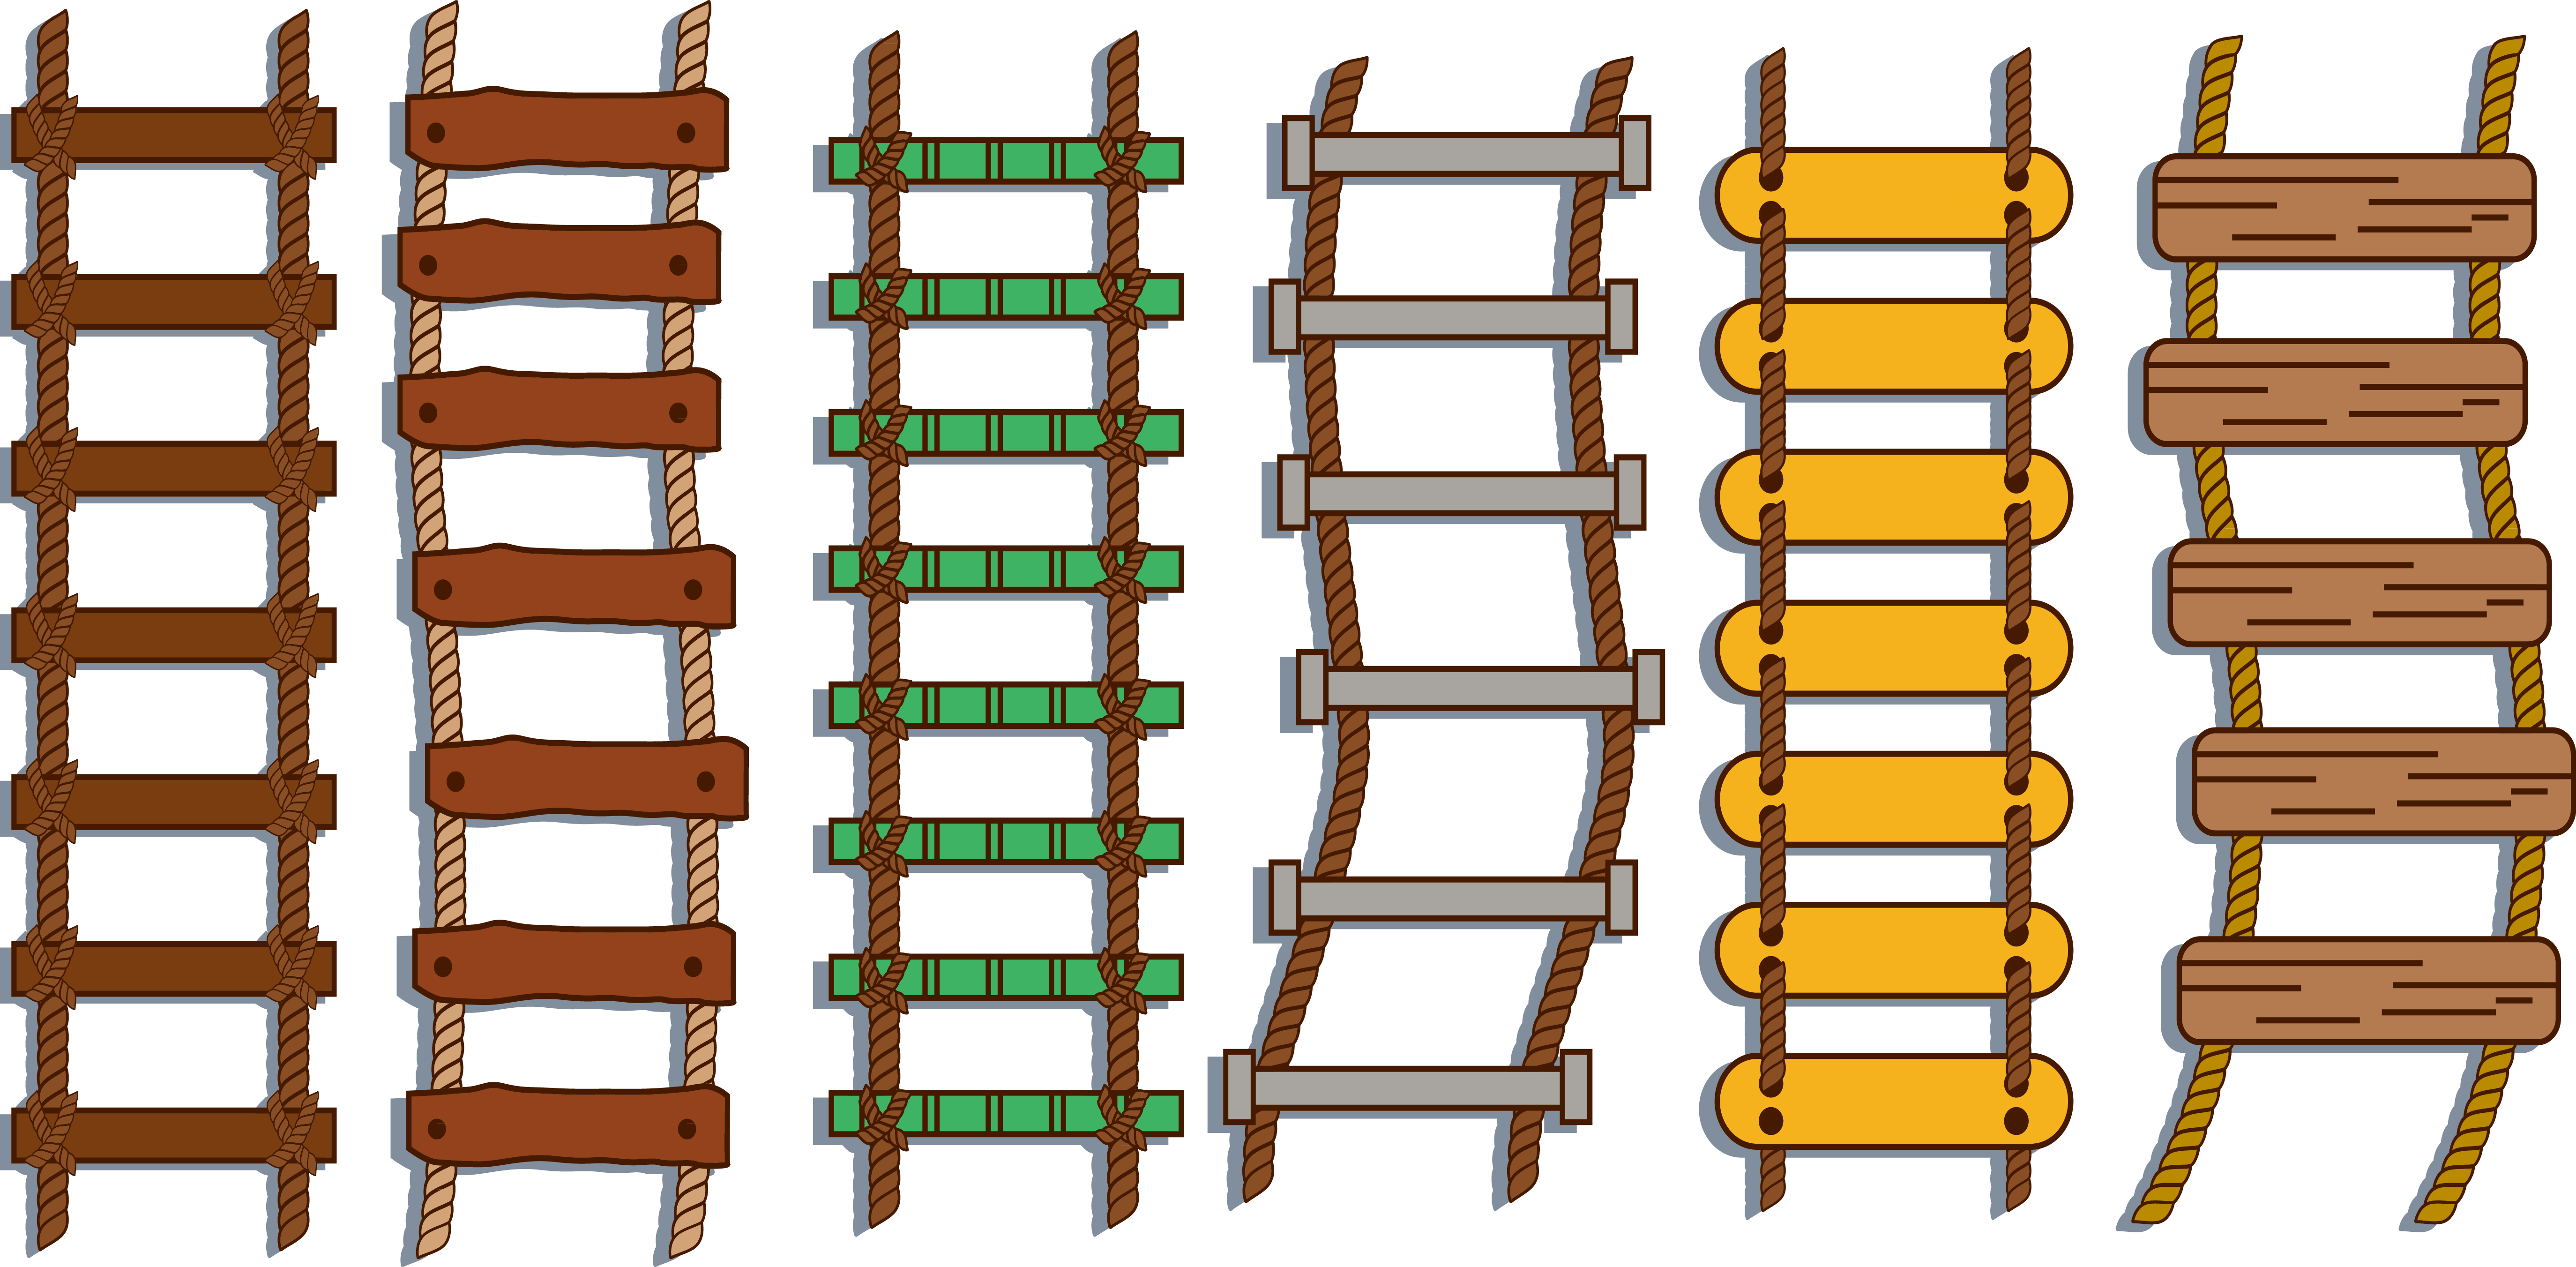 jpg transparent library Rope ladder clipart. Stairs repstege transprent png